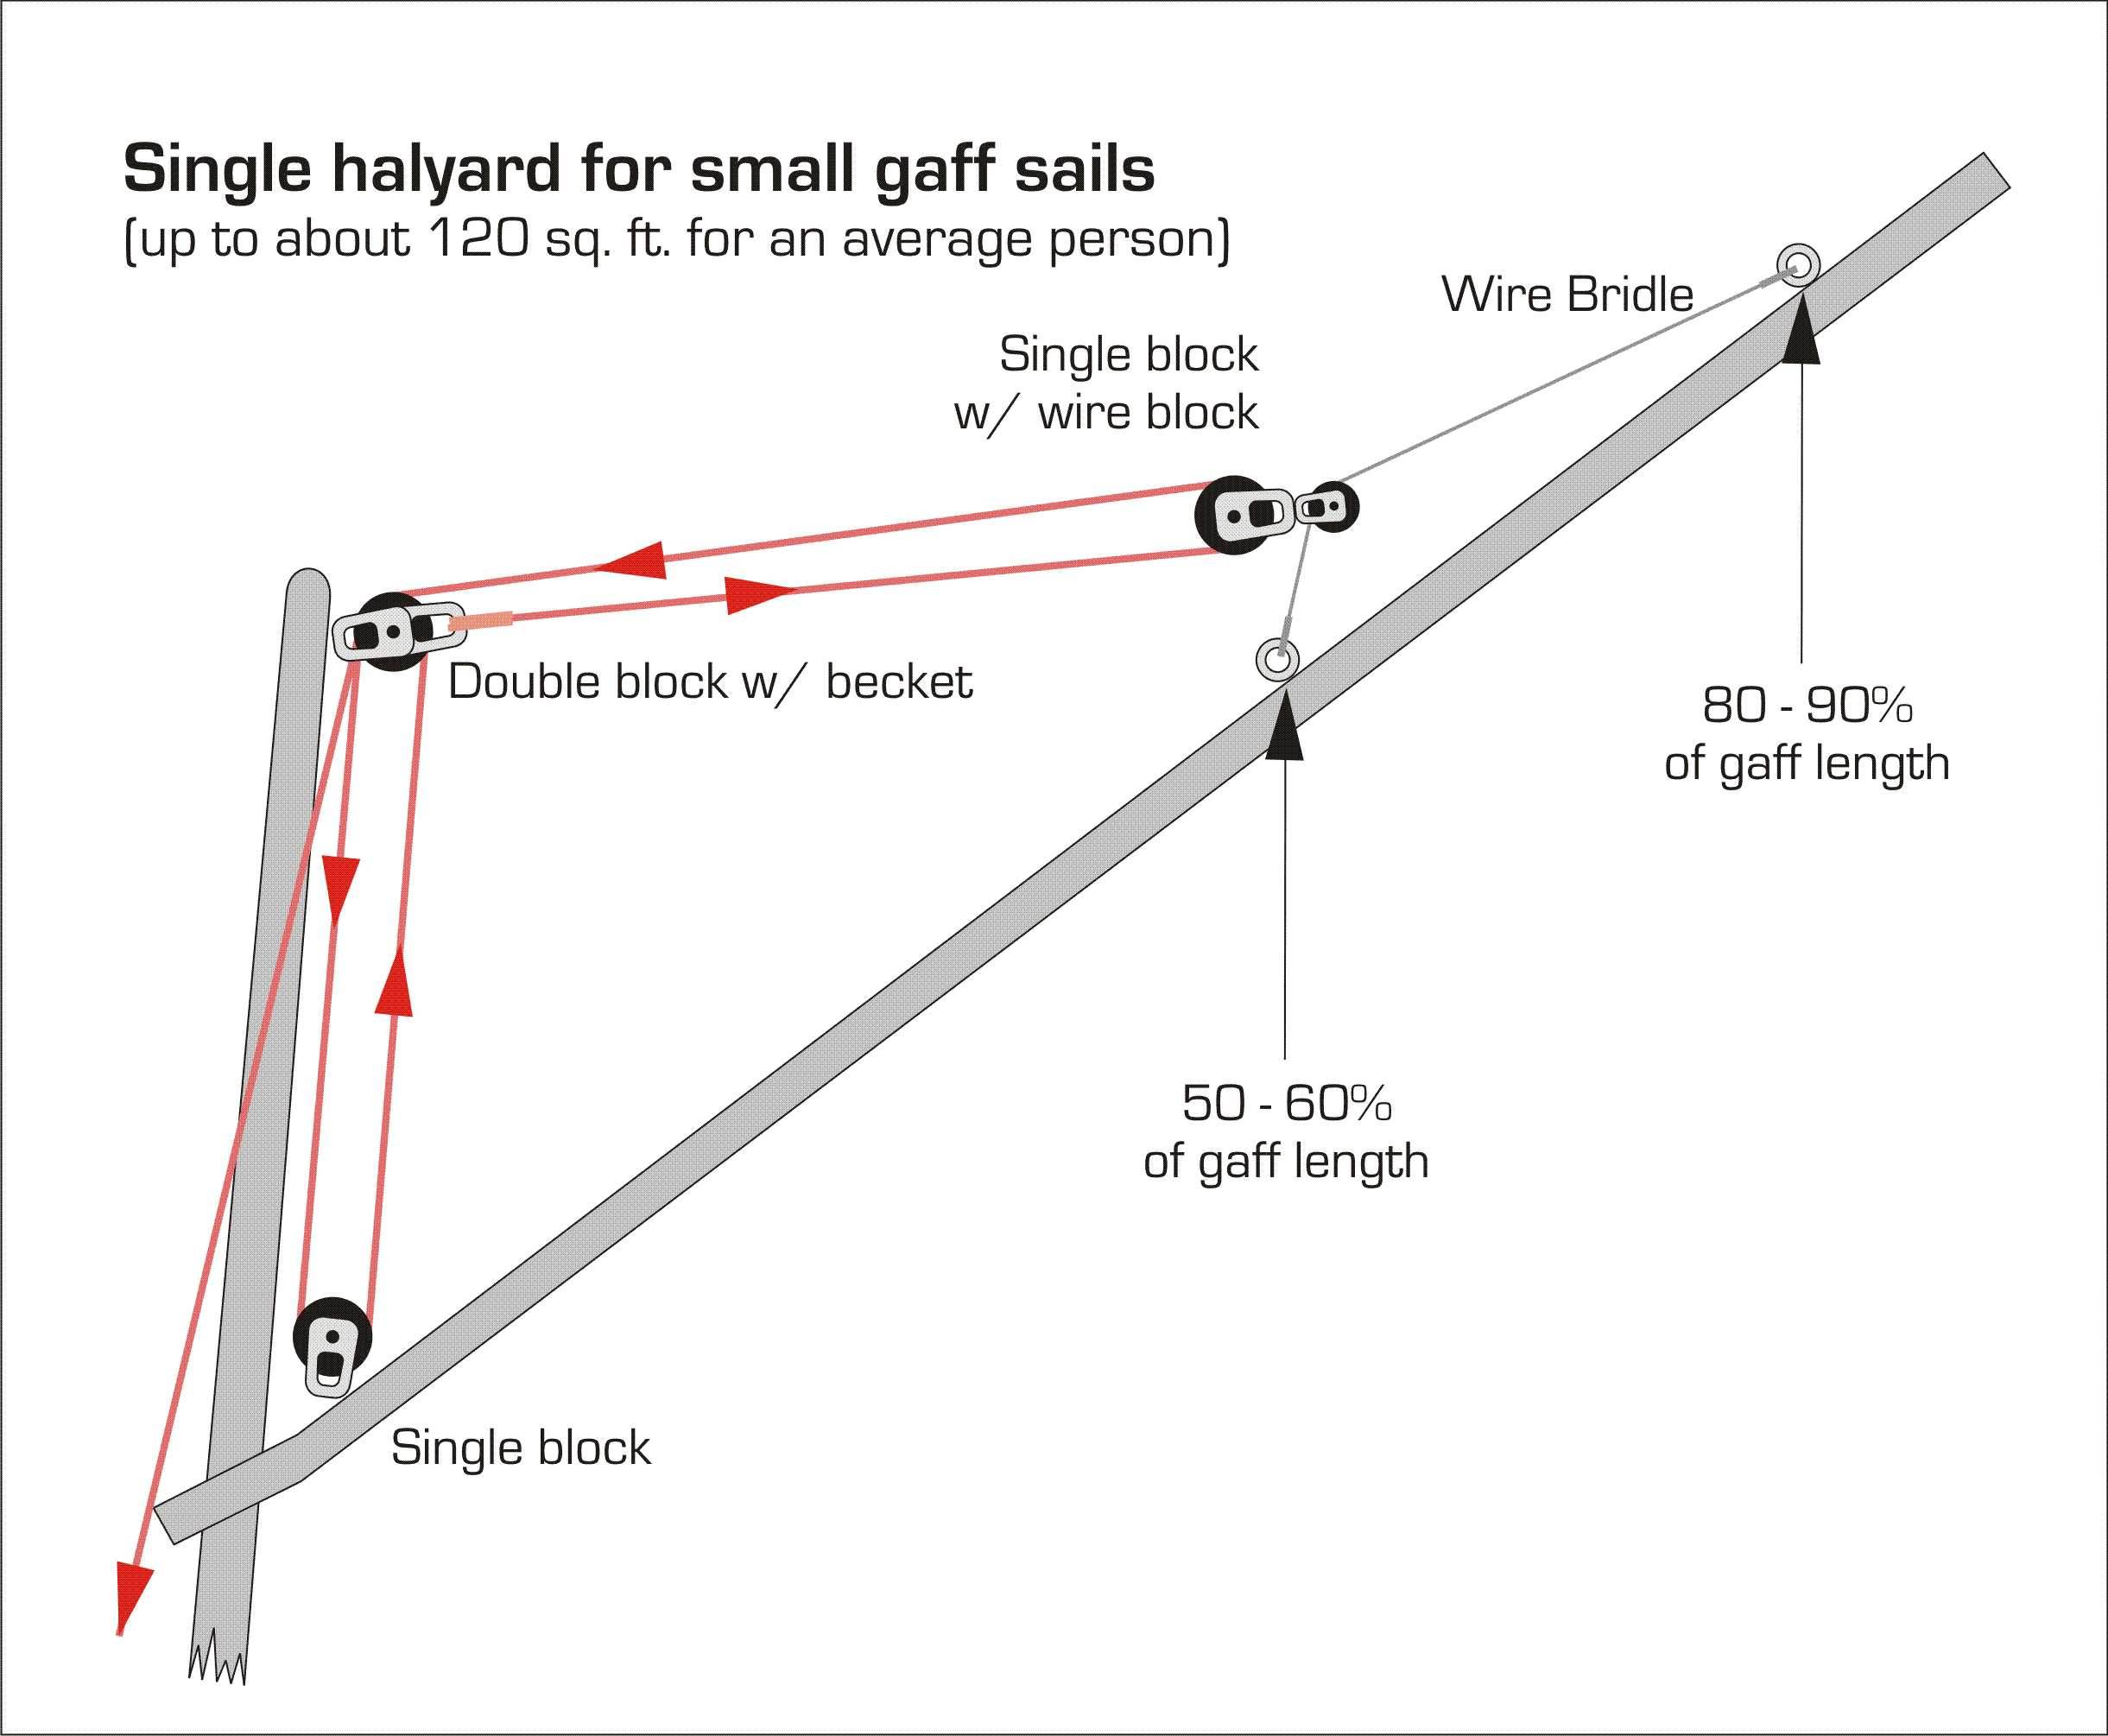 Must be nuts ,here we go again | Land Yacht Sailing Forums, page 3